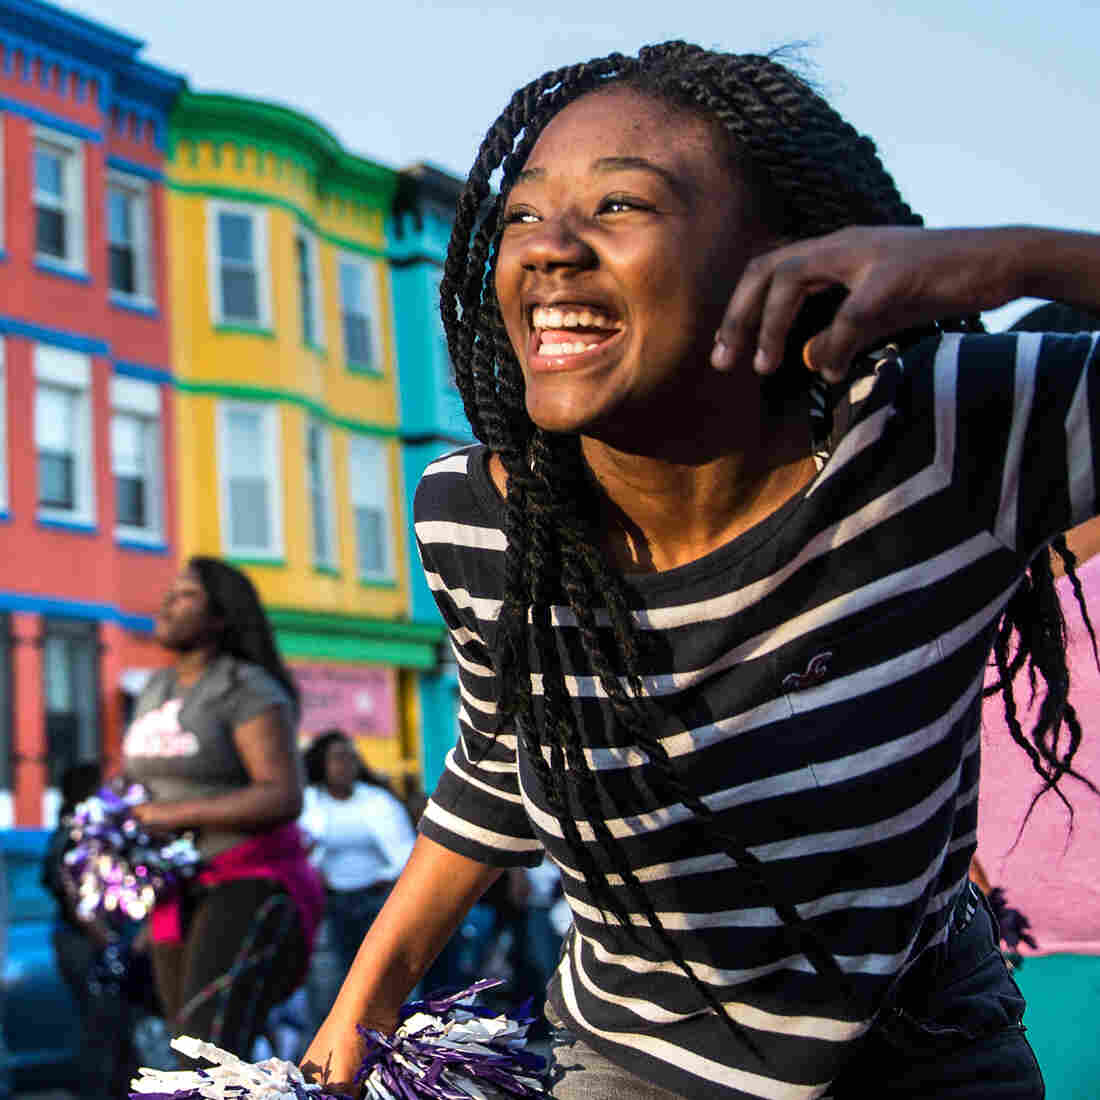 Beyond The Headlines, There's Much More To West Baltimore